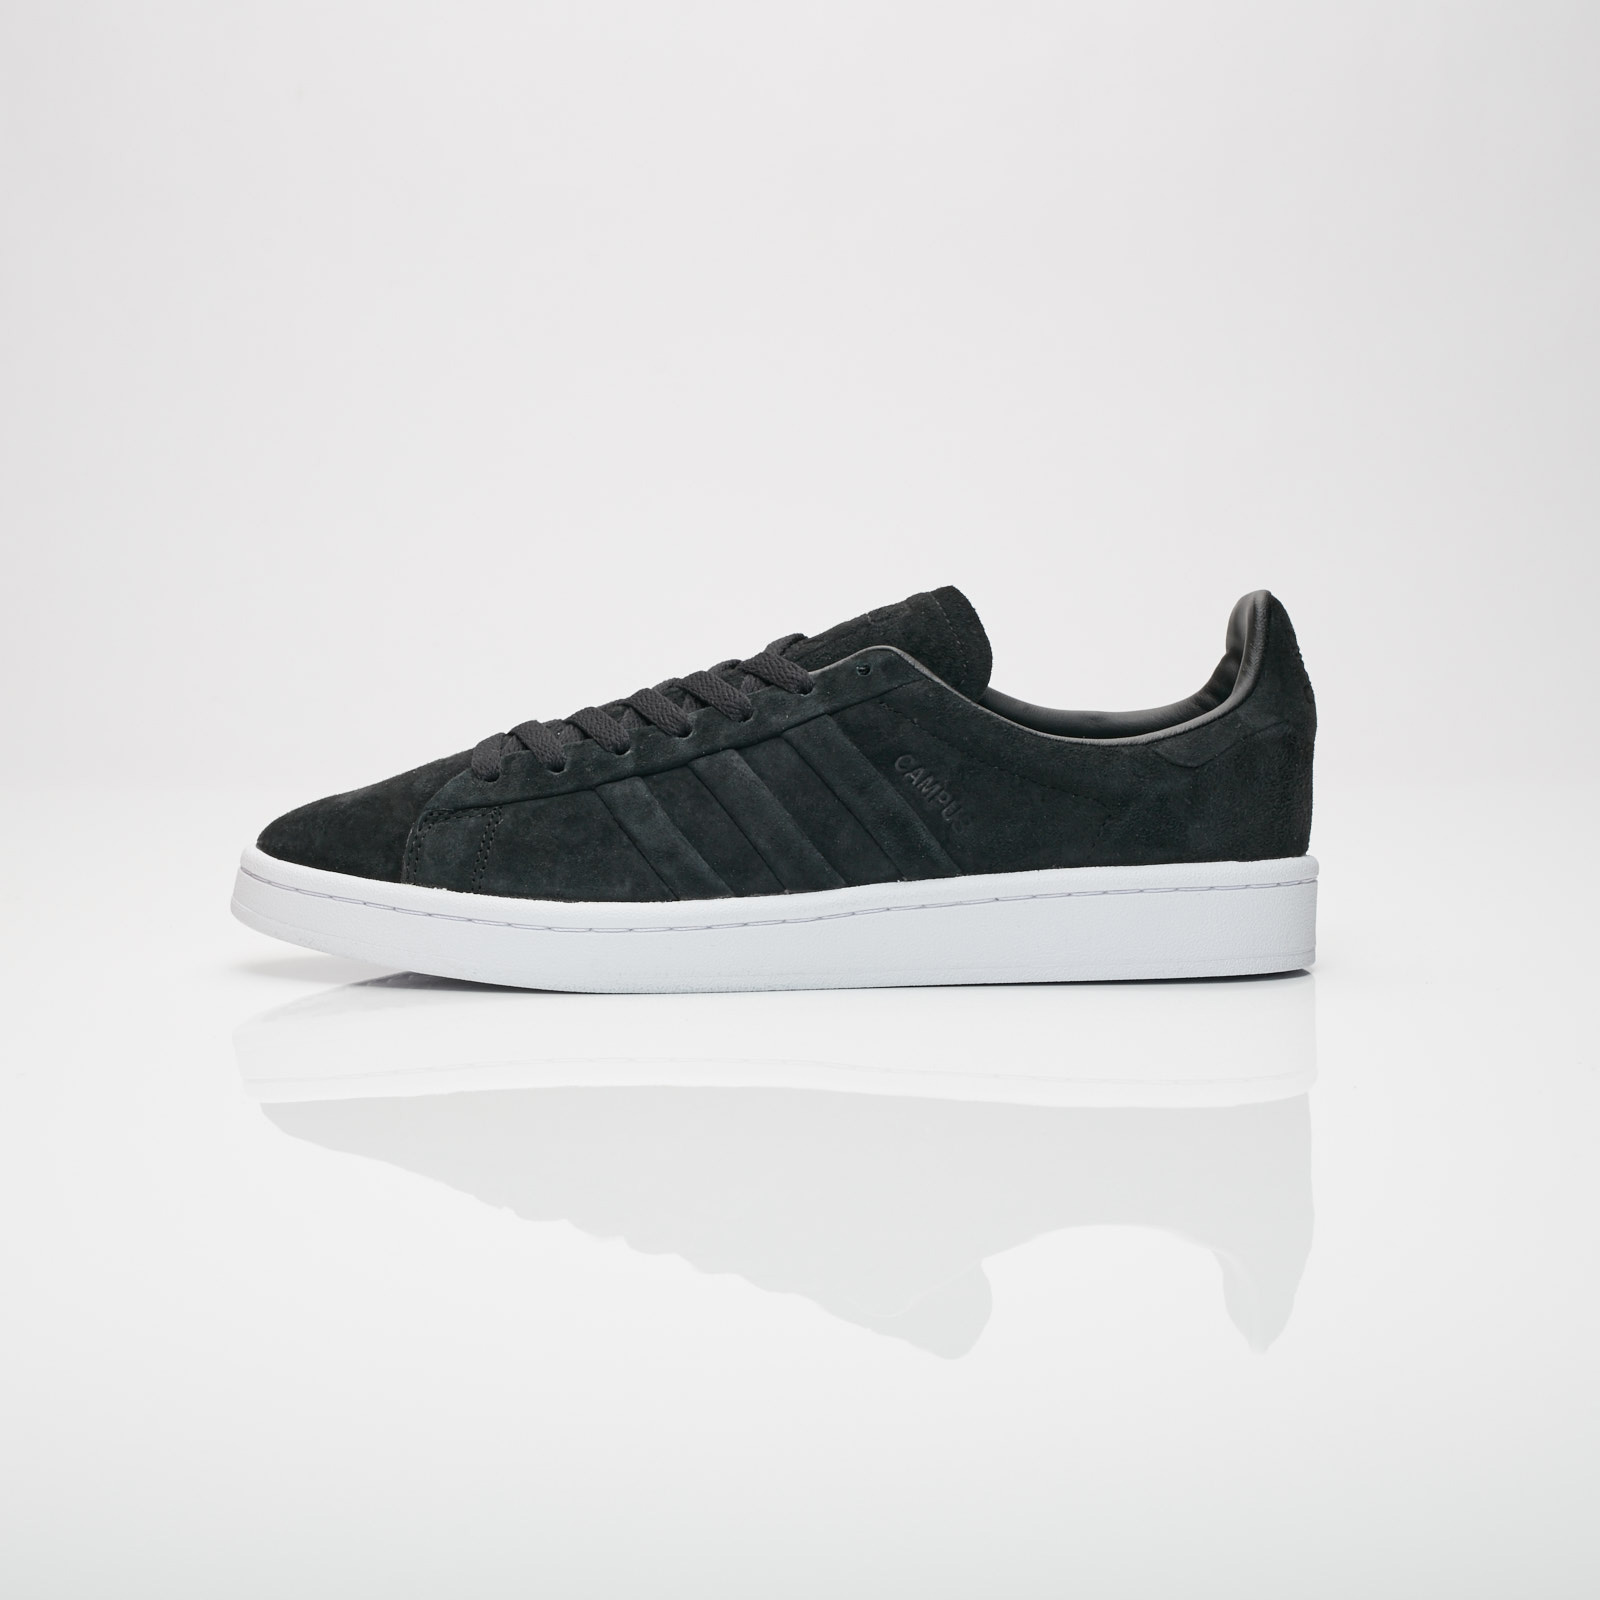 huge discount 31302 d8bed adidas Campus Stitch And Turn - Bb6745 - Sneakersnstuff   sneakers    streetwear online since 1999